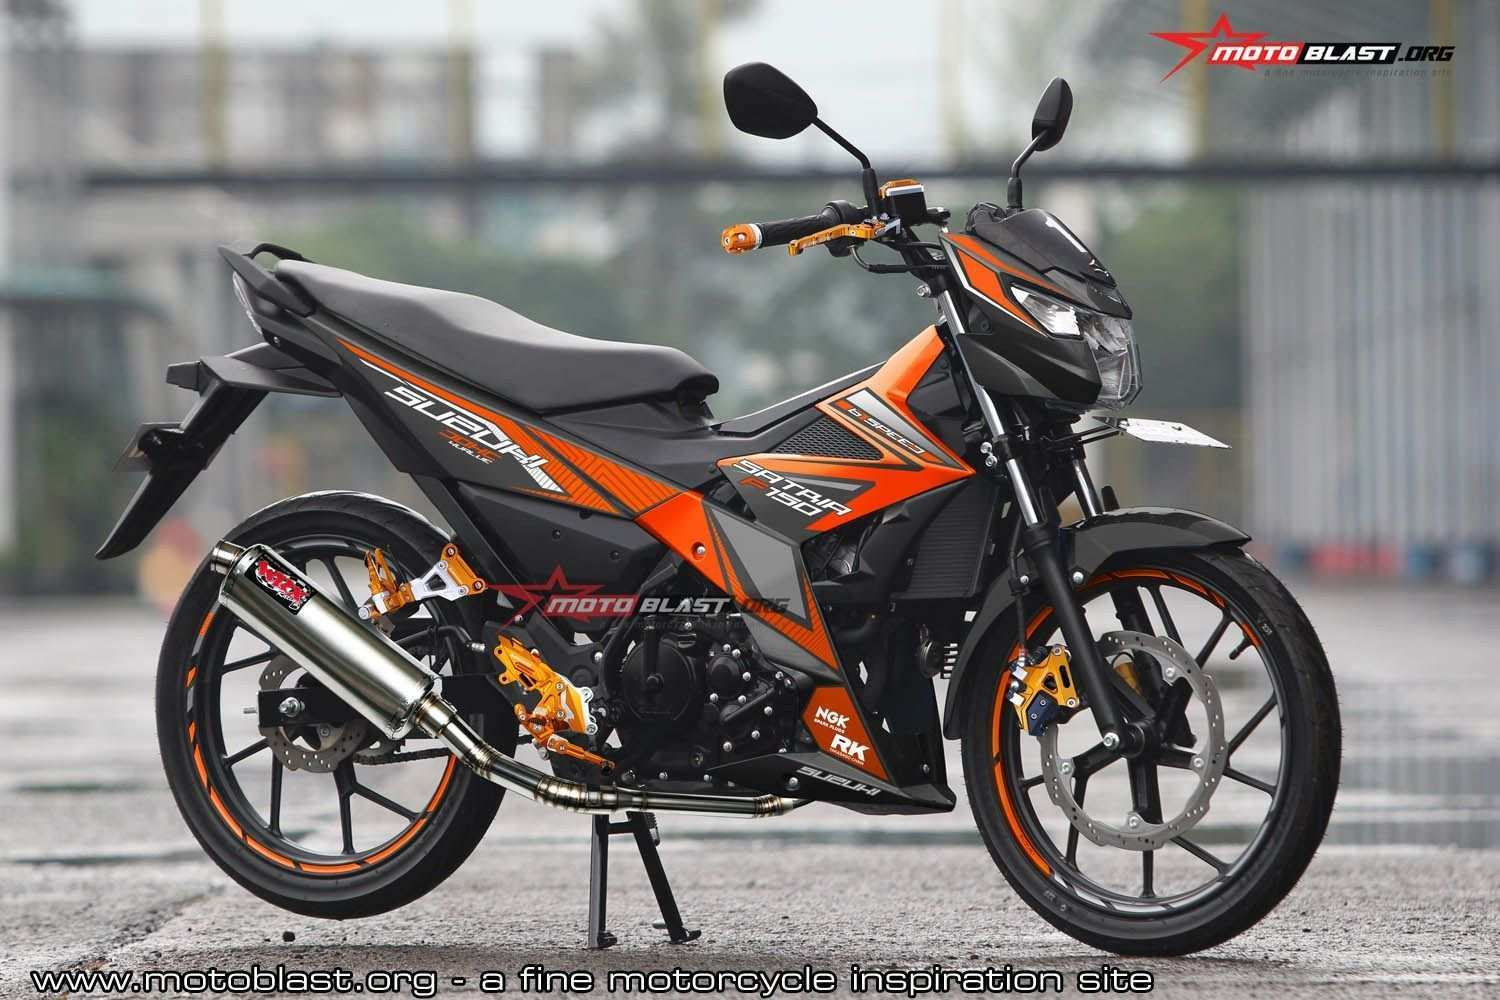 96 Gallery of Suzuki Satria Fu 2020 Research New with Suzuki Satria Fu 2020